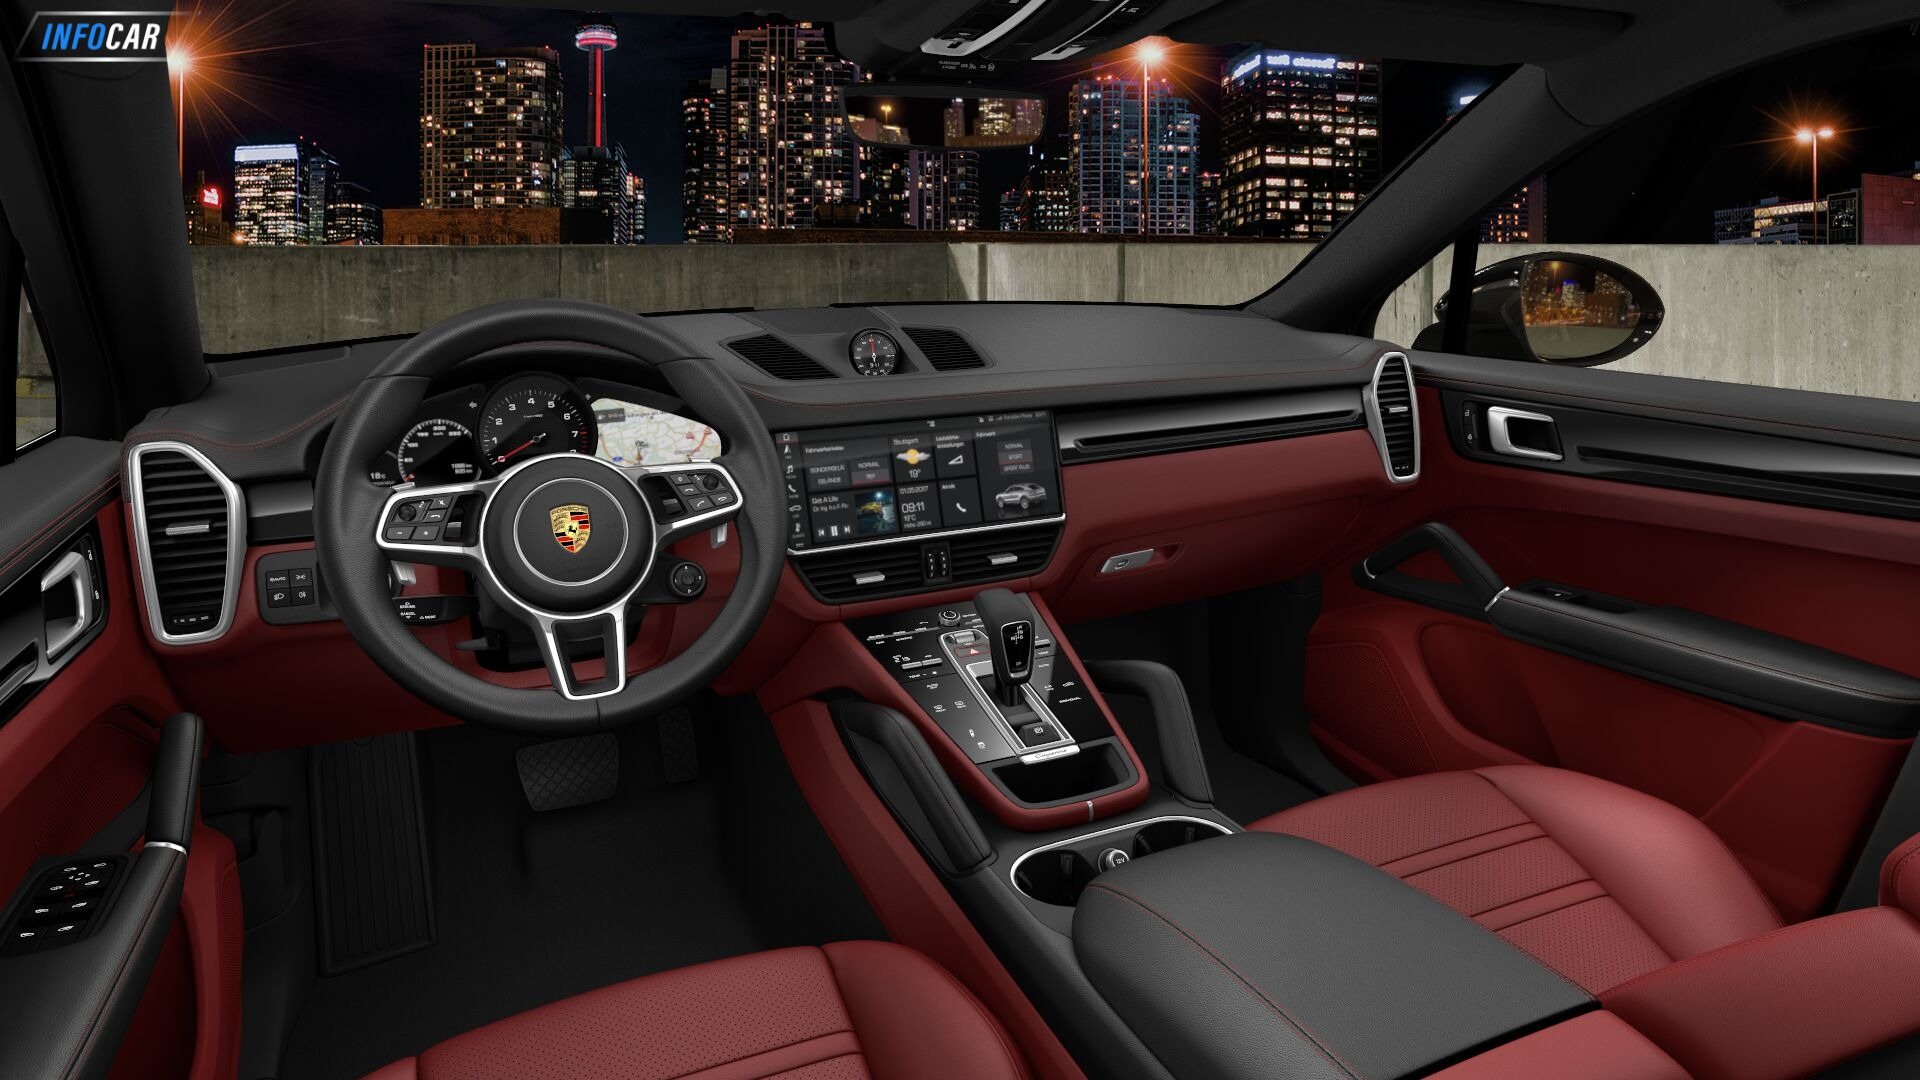 2020 Porsche Cayenne coupe - INFOCAR - Toronto's Most Comprehensive New and Used Auto Trading Platform